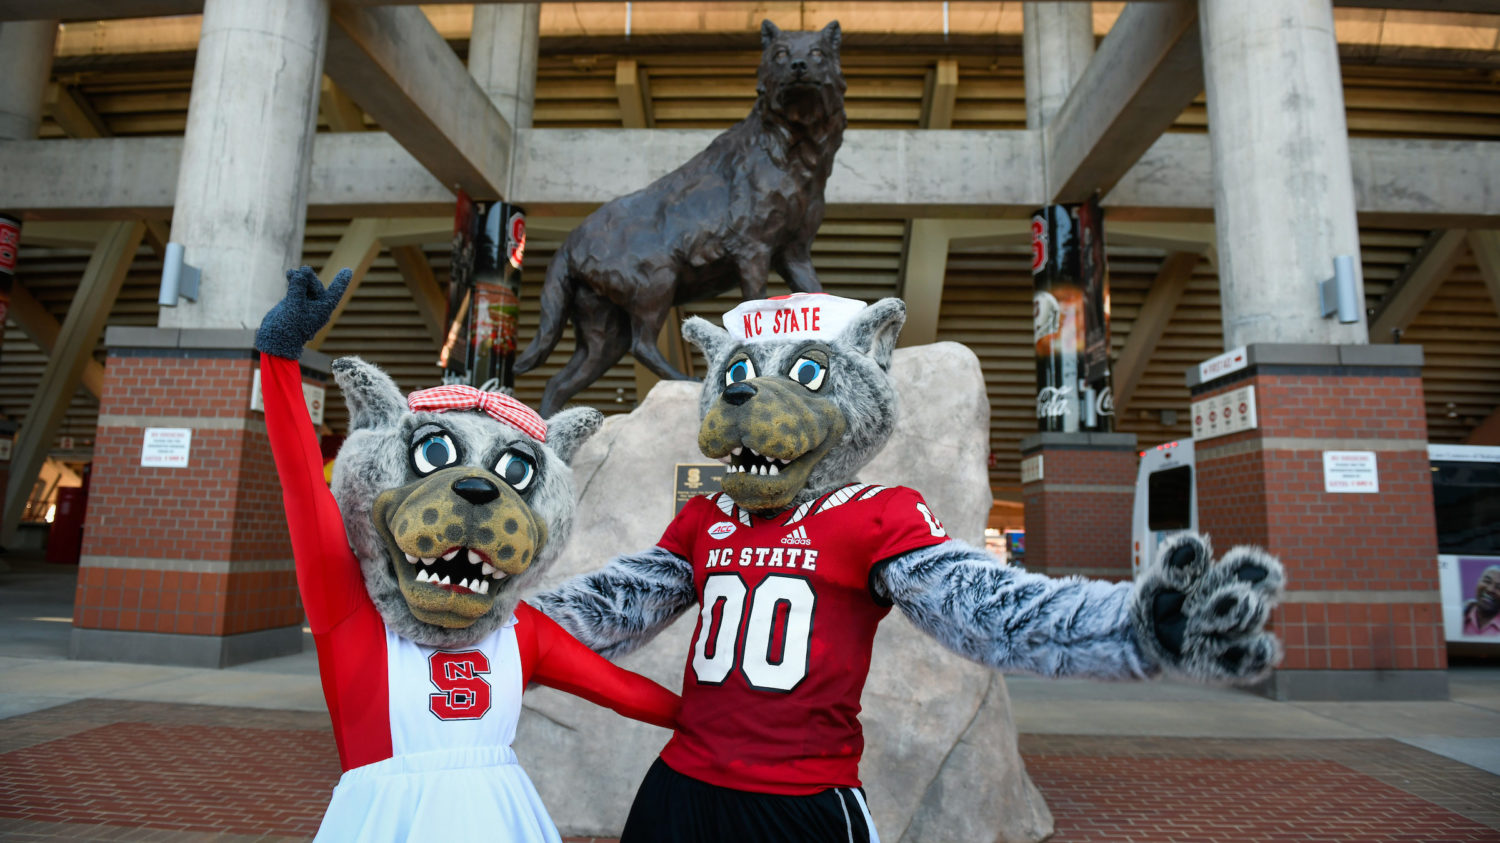 Mr. and Ms. Wuf outside Carter Finley stadium